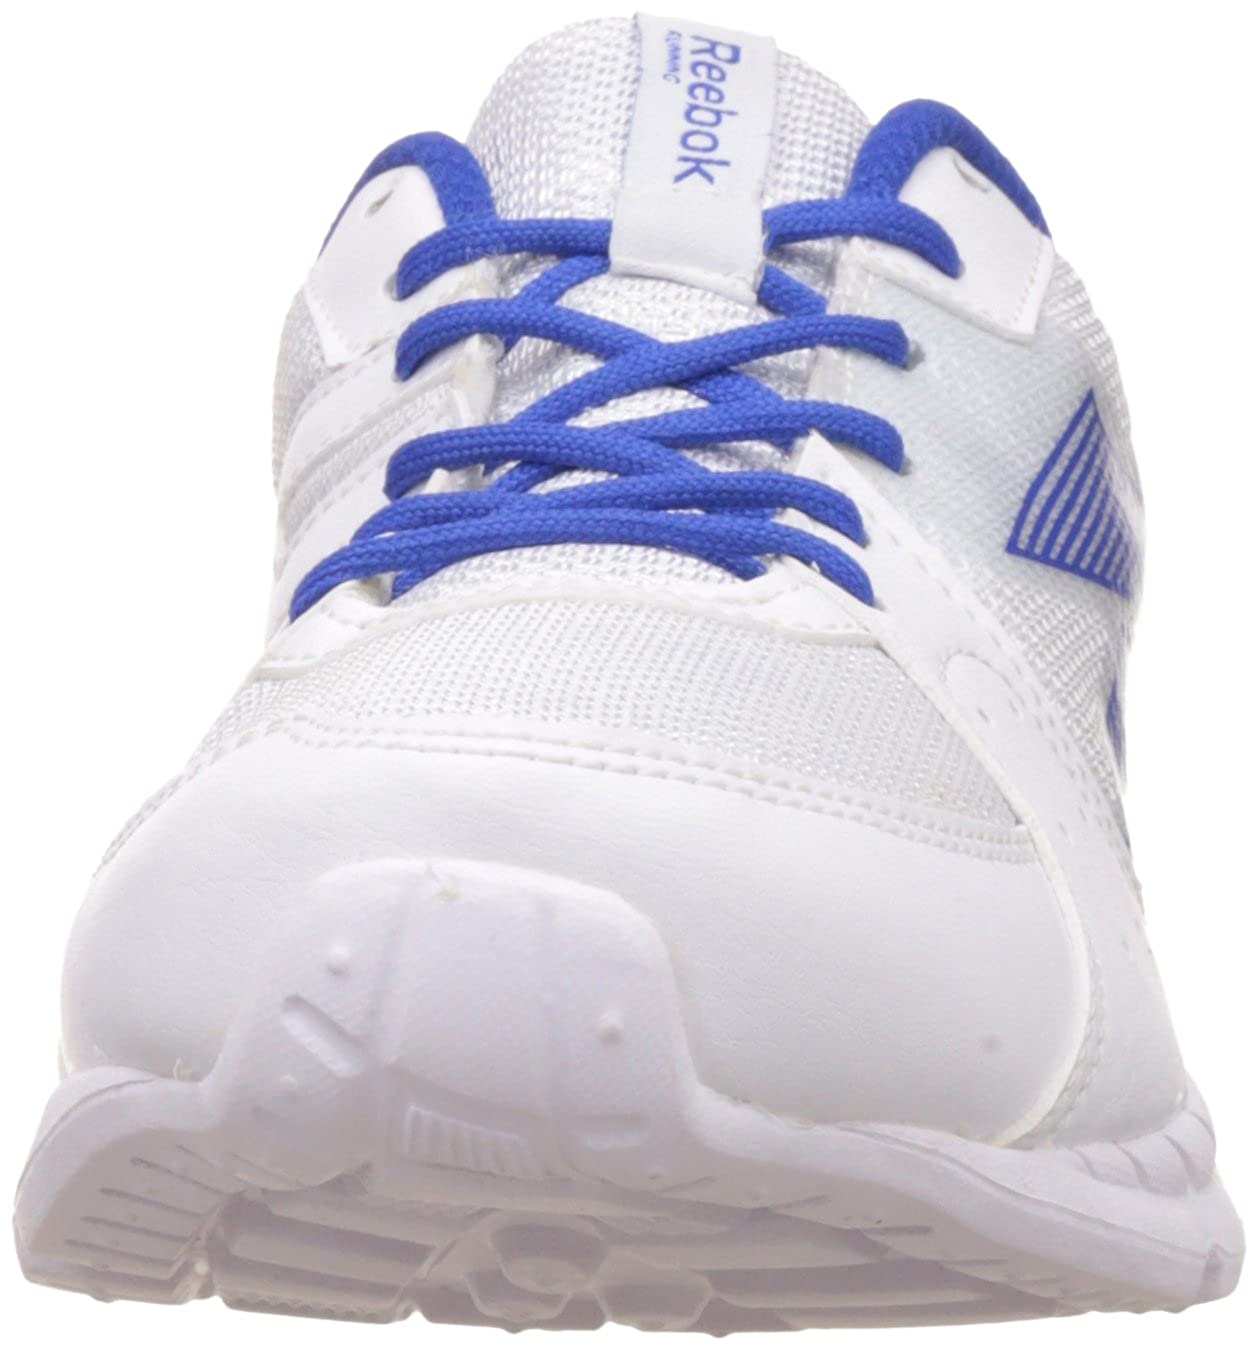 ee5a68182c4f Reebok Men s Speed Up Xt Running Shoes  Buy Online at Low Prices in India -  Amazon.in